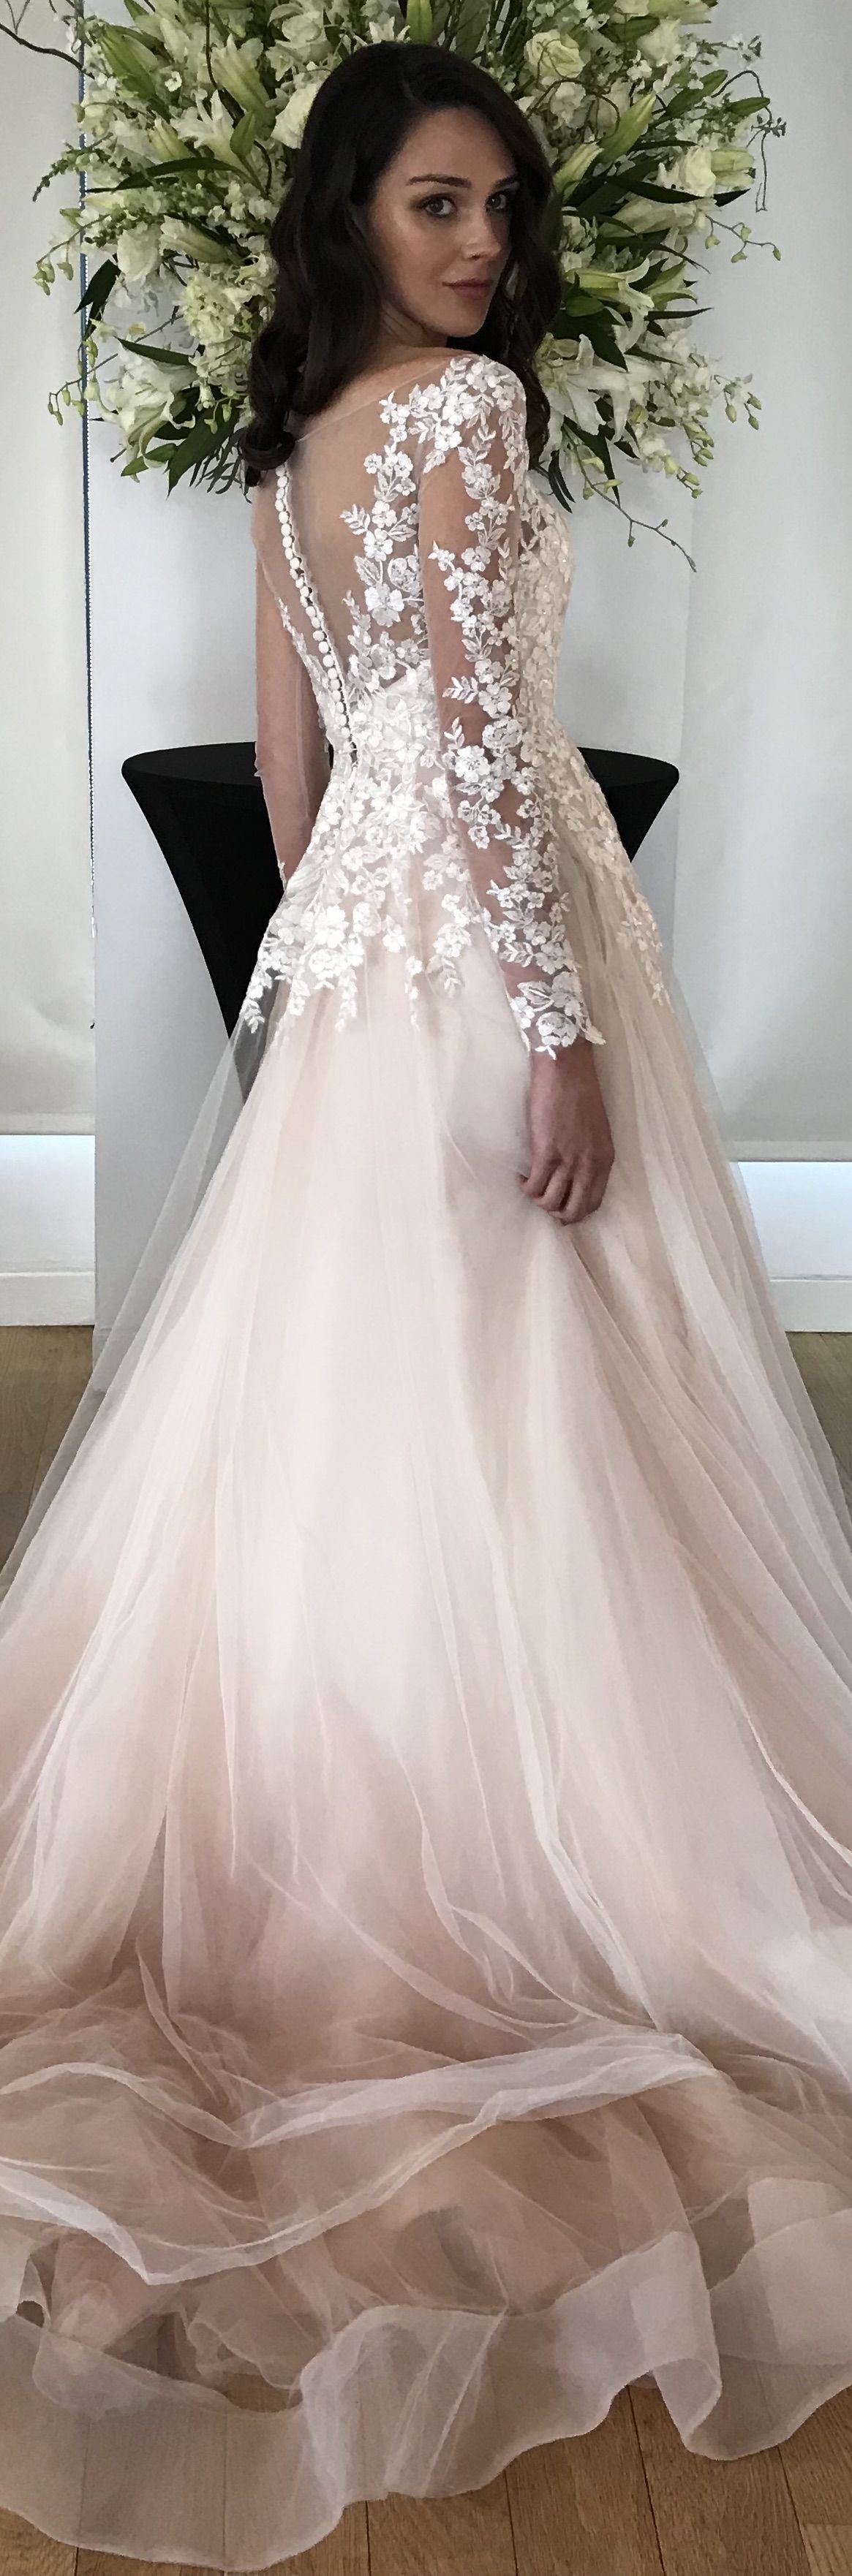 Blush wedding dress with sleeves  Alba  when two become one  Pinterest  Horsehair Ball gowns and